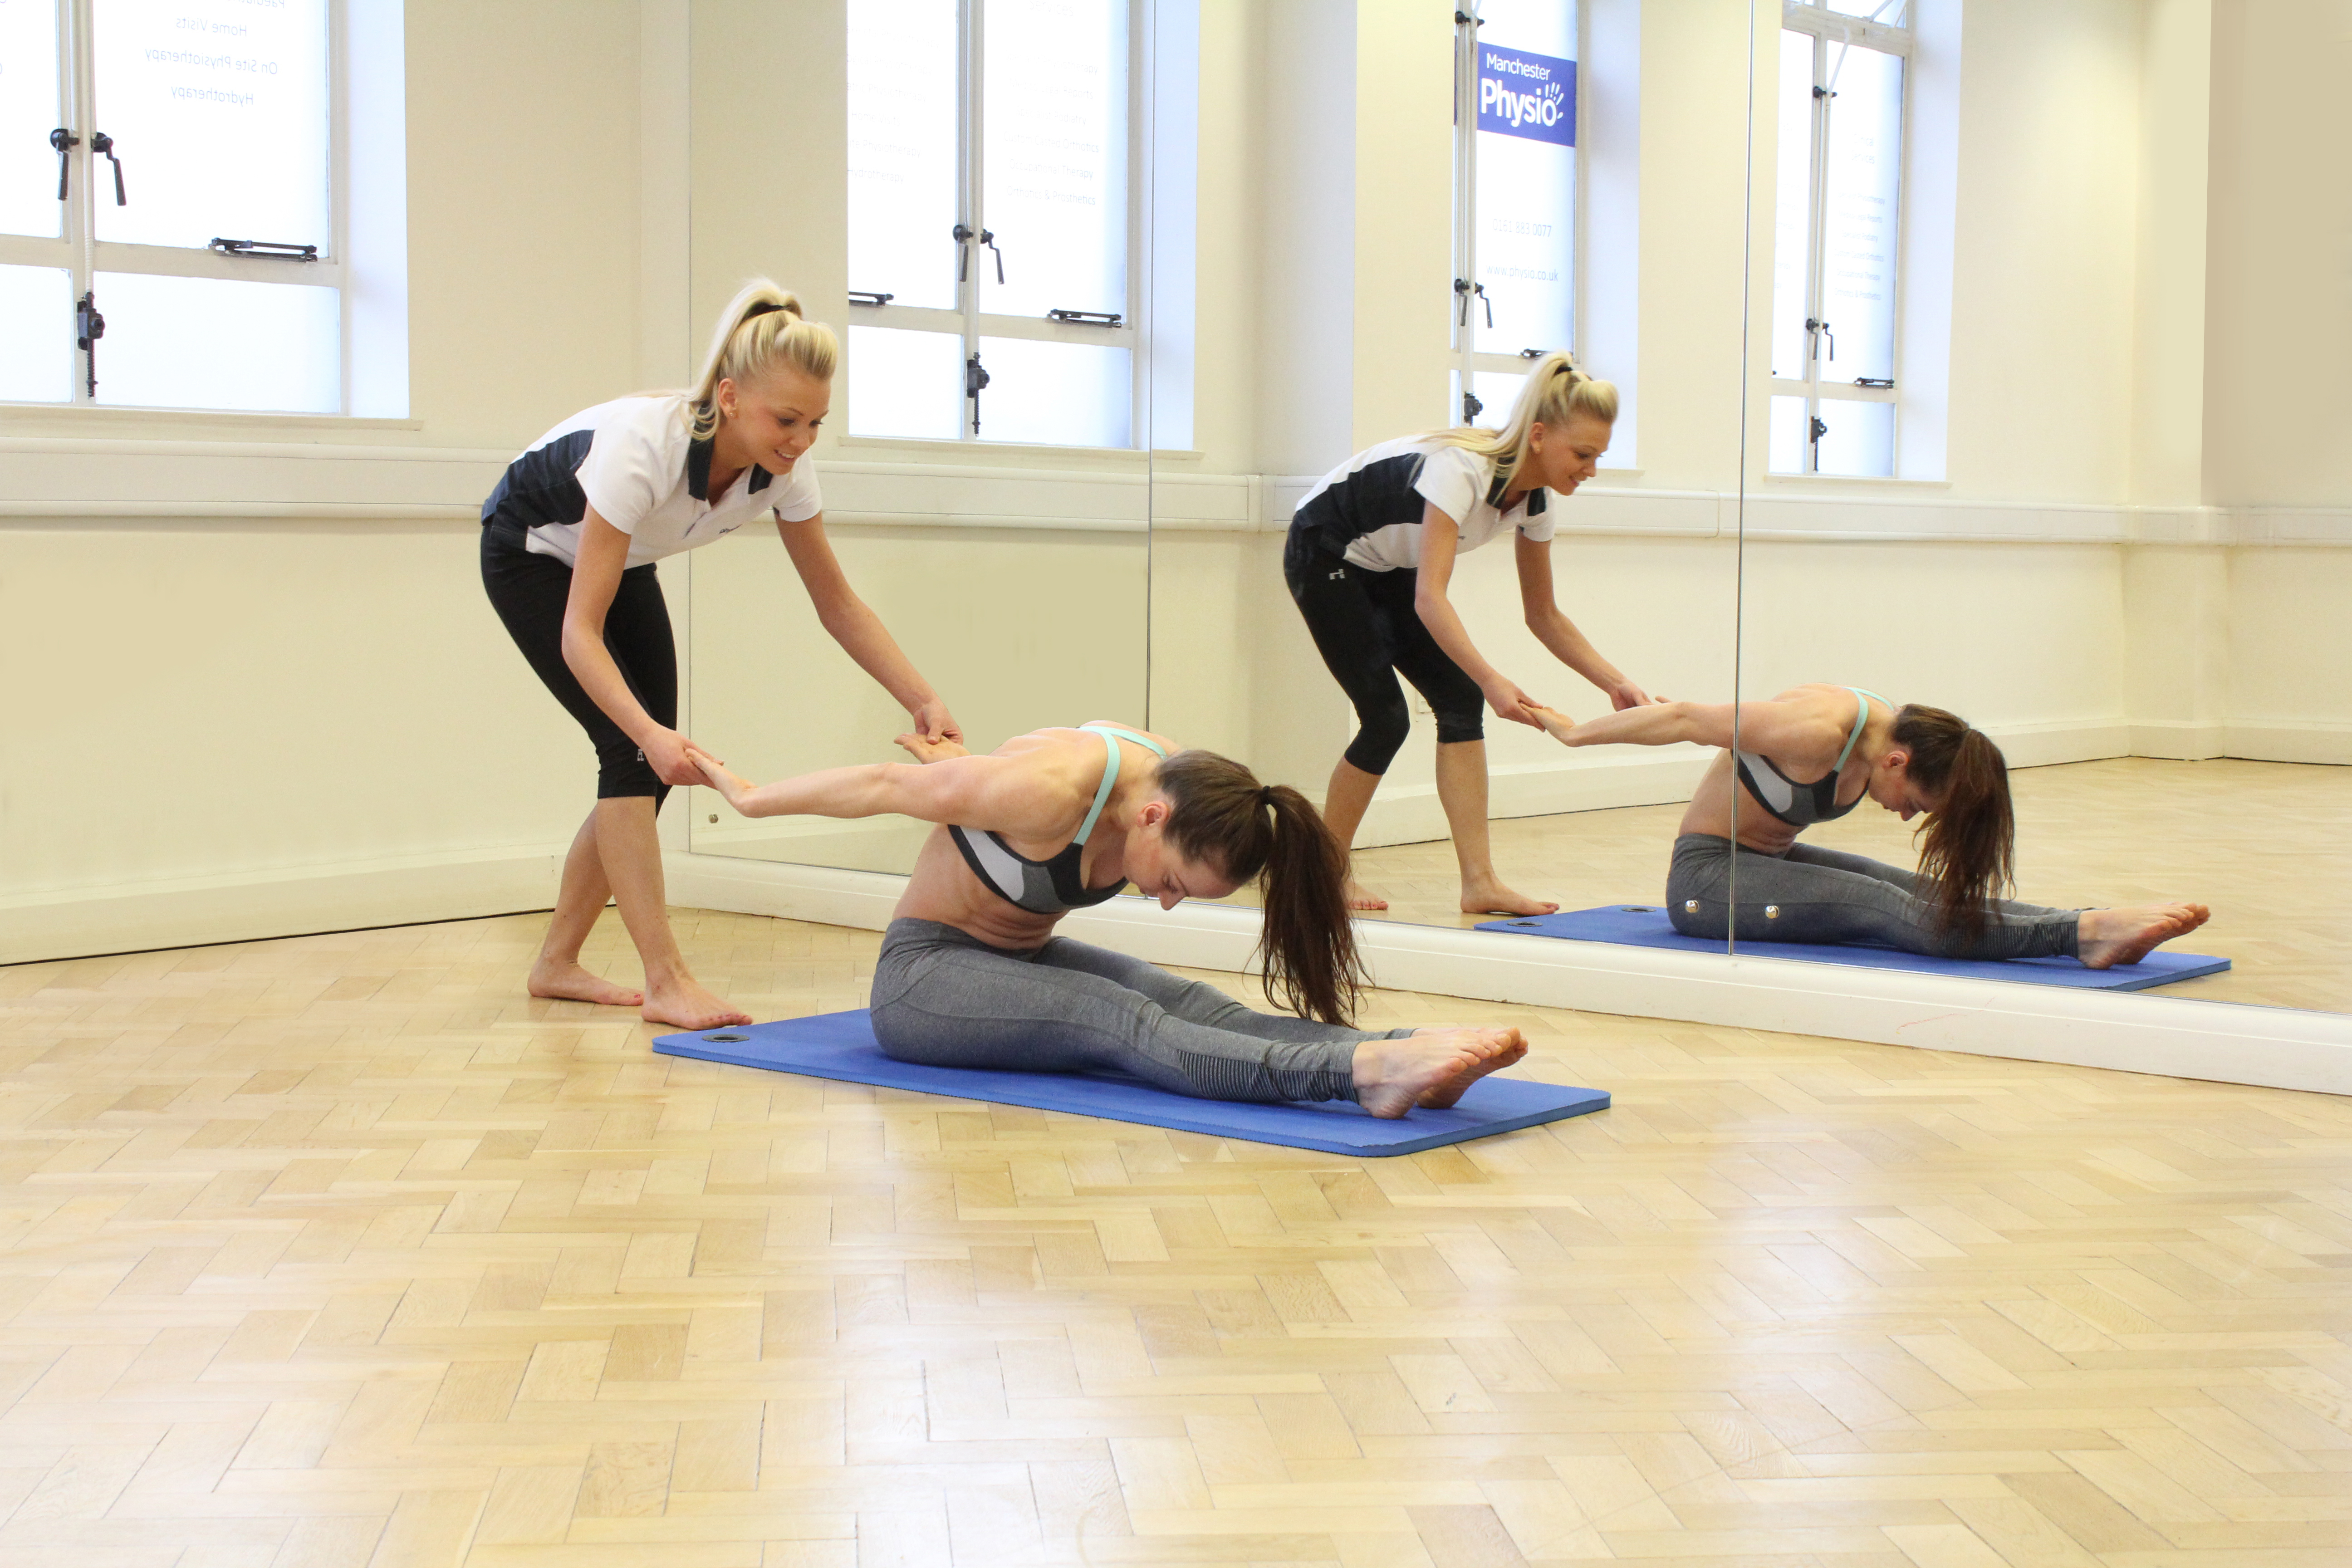 Pilates exercises to improve your strength